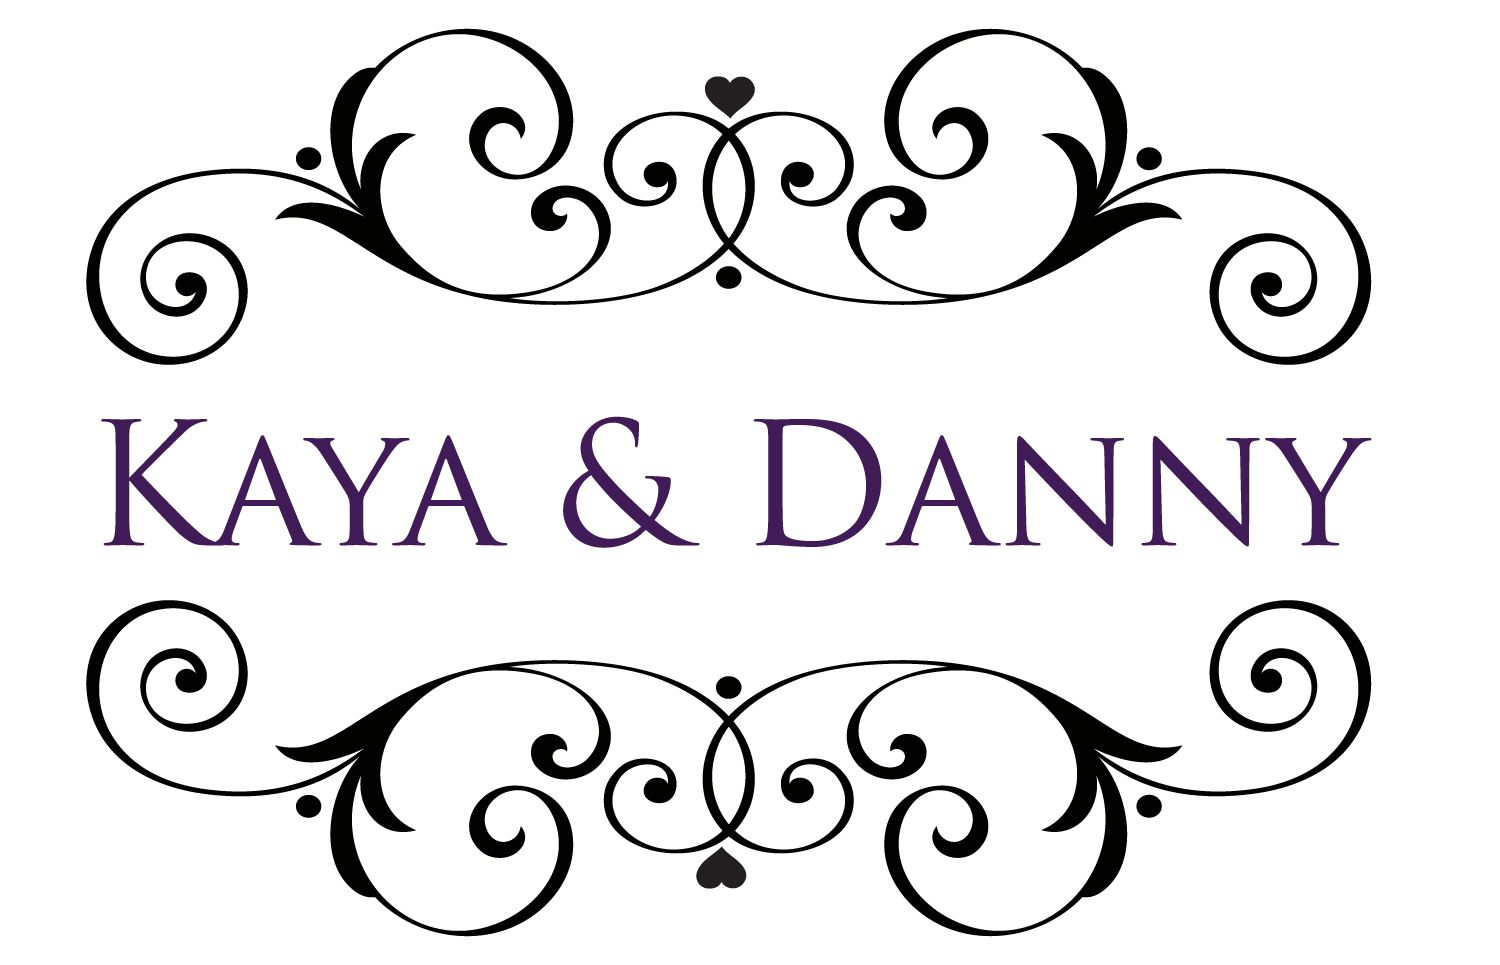 Free monogram templates double trouble designs wedding monograms free monogram templates double trouble designs wedding monograms wine bottle label for kaya junglespirit Choice Image